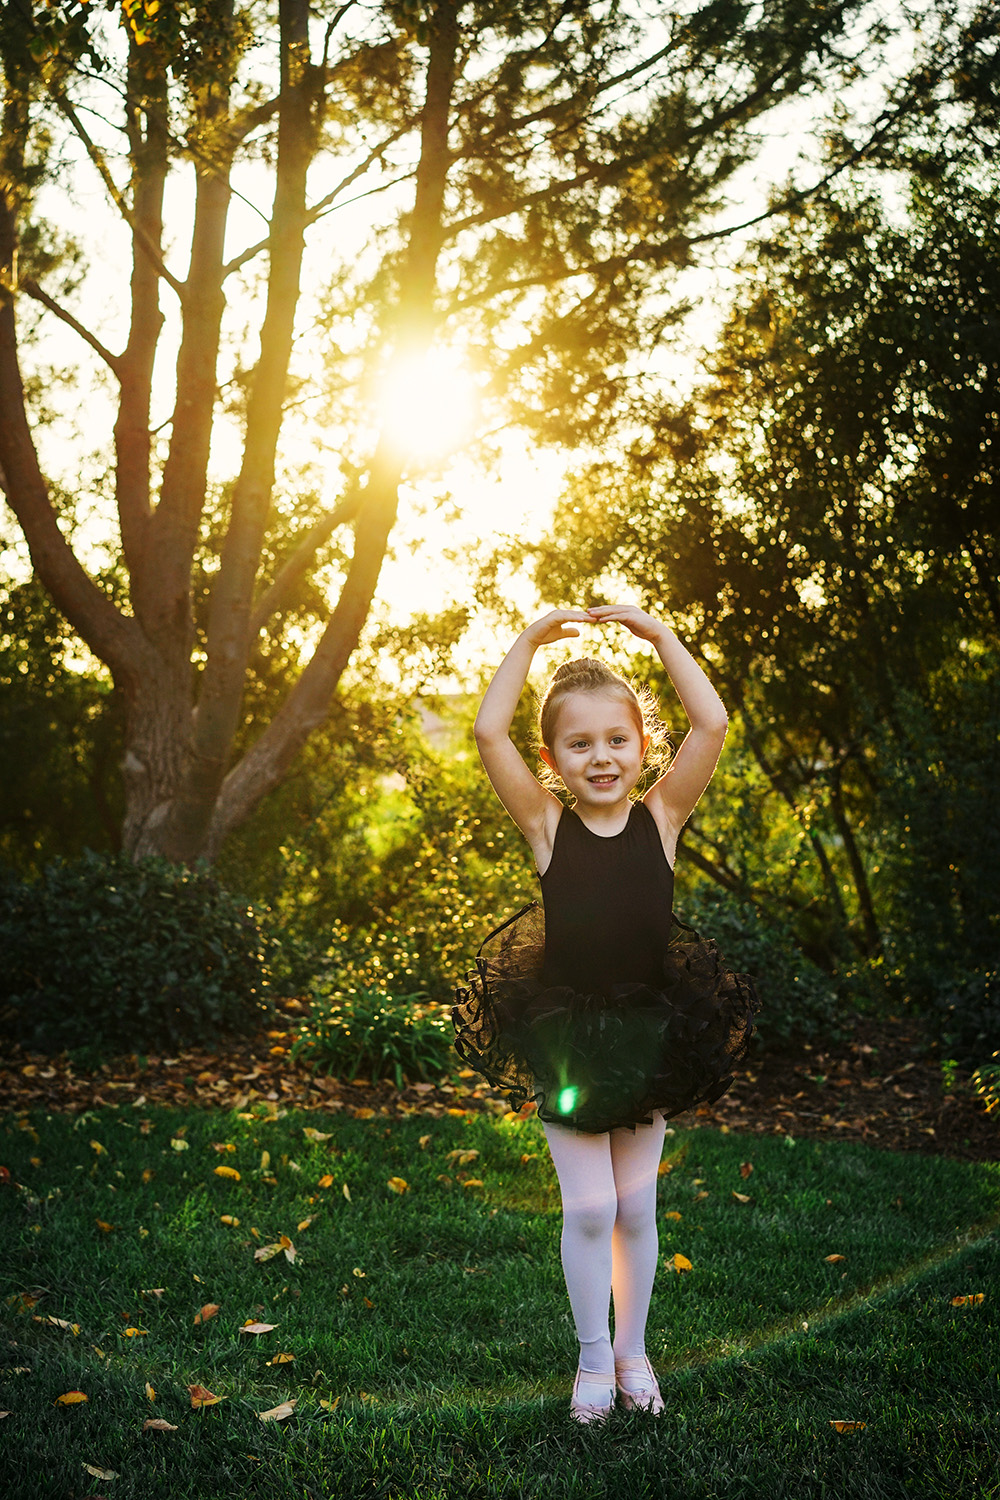 Ballerina Hudson   A7II, 55 1.8, 1/400th at f4.5, 250 ISO (reflector fill).  Processed from the jpeg file, enhanced using Replichrome and Alien Skin Exposure 6.